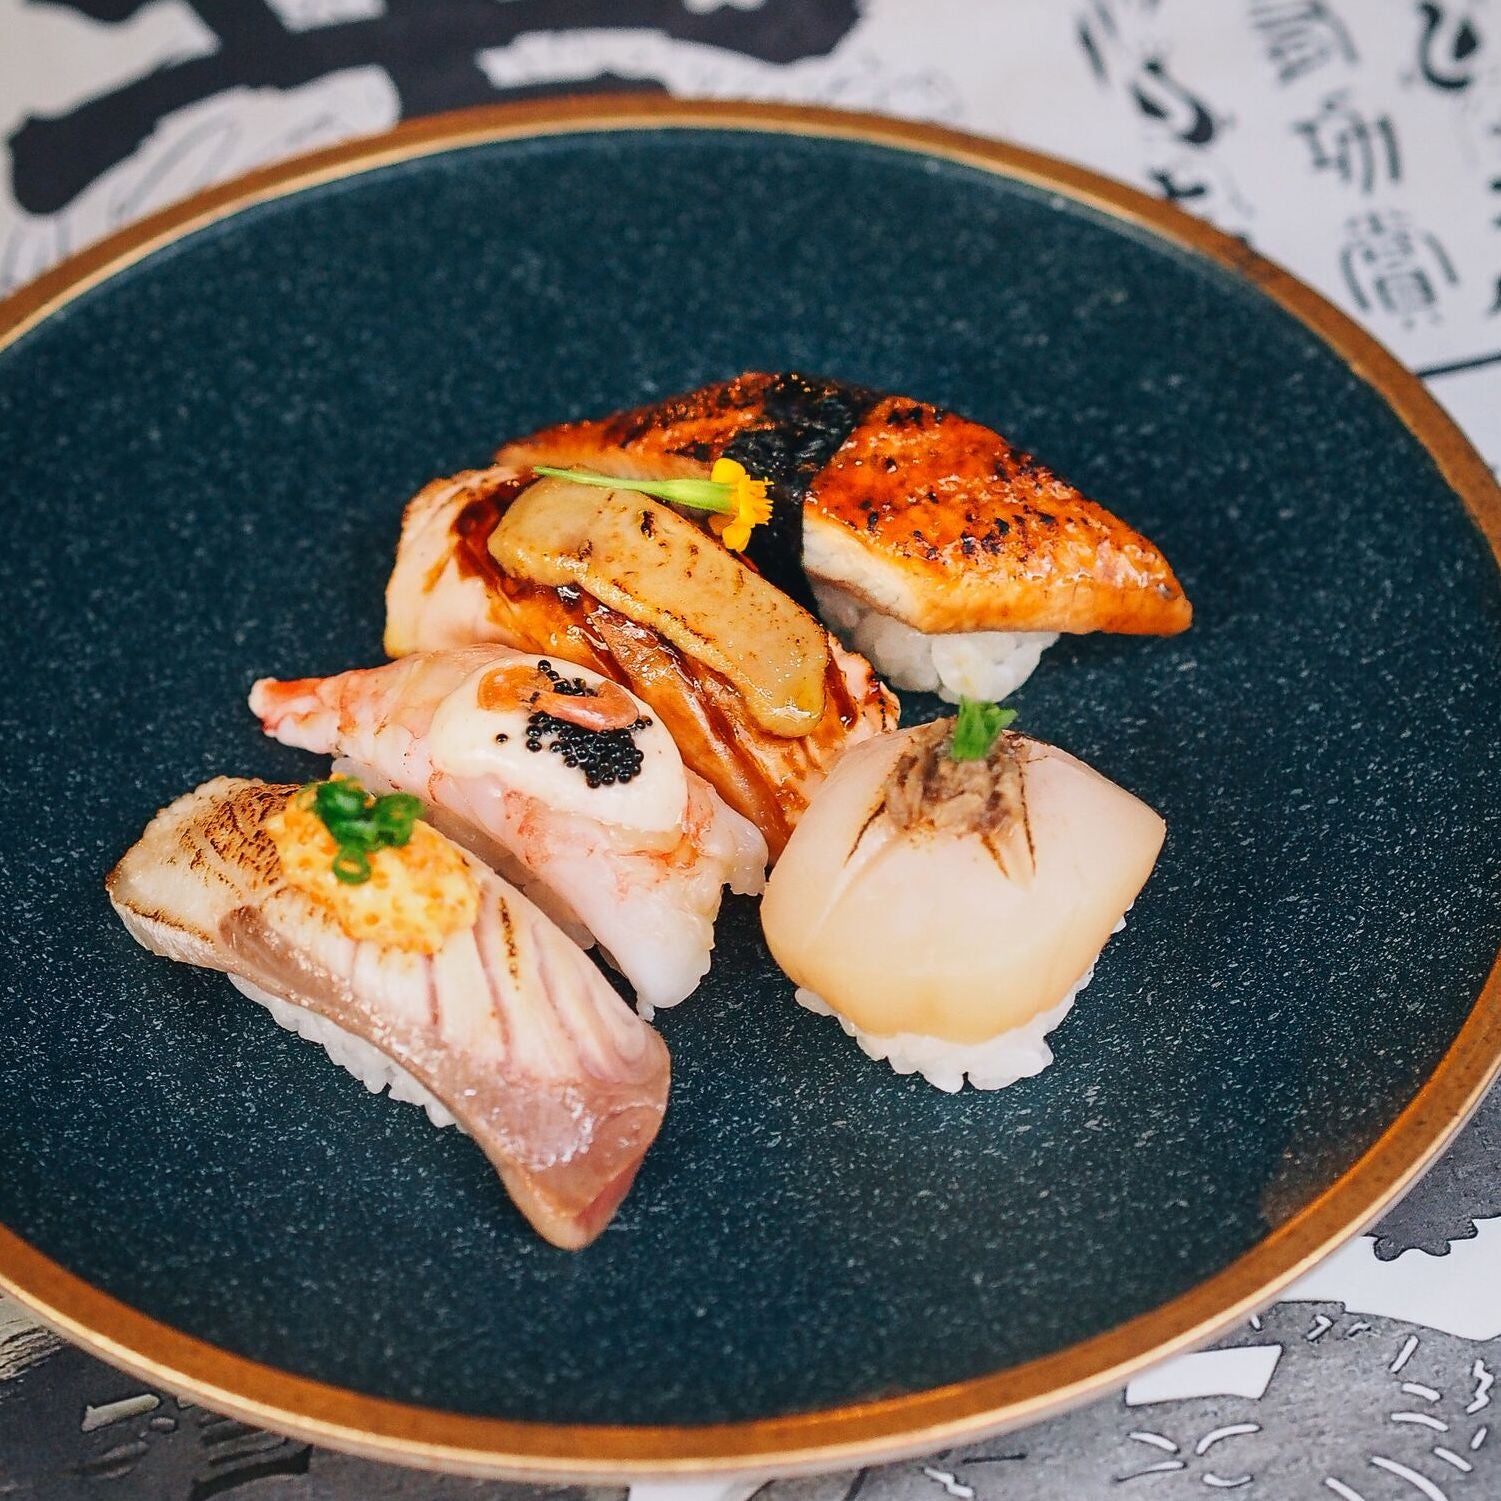 Aburi Nigiri ($12 for 2 pieces)